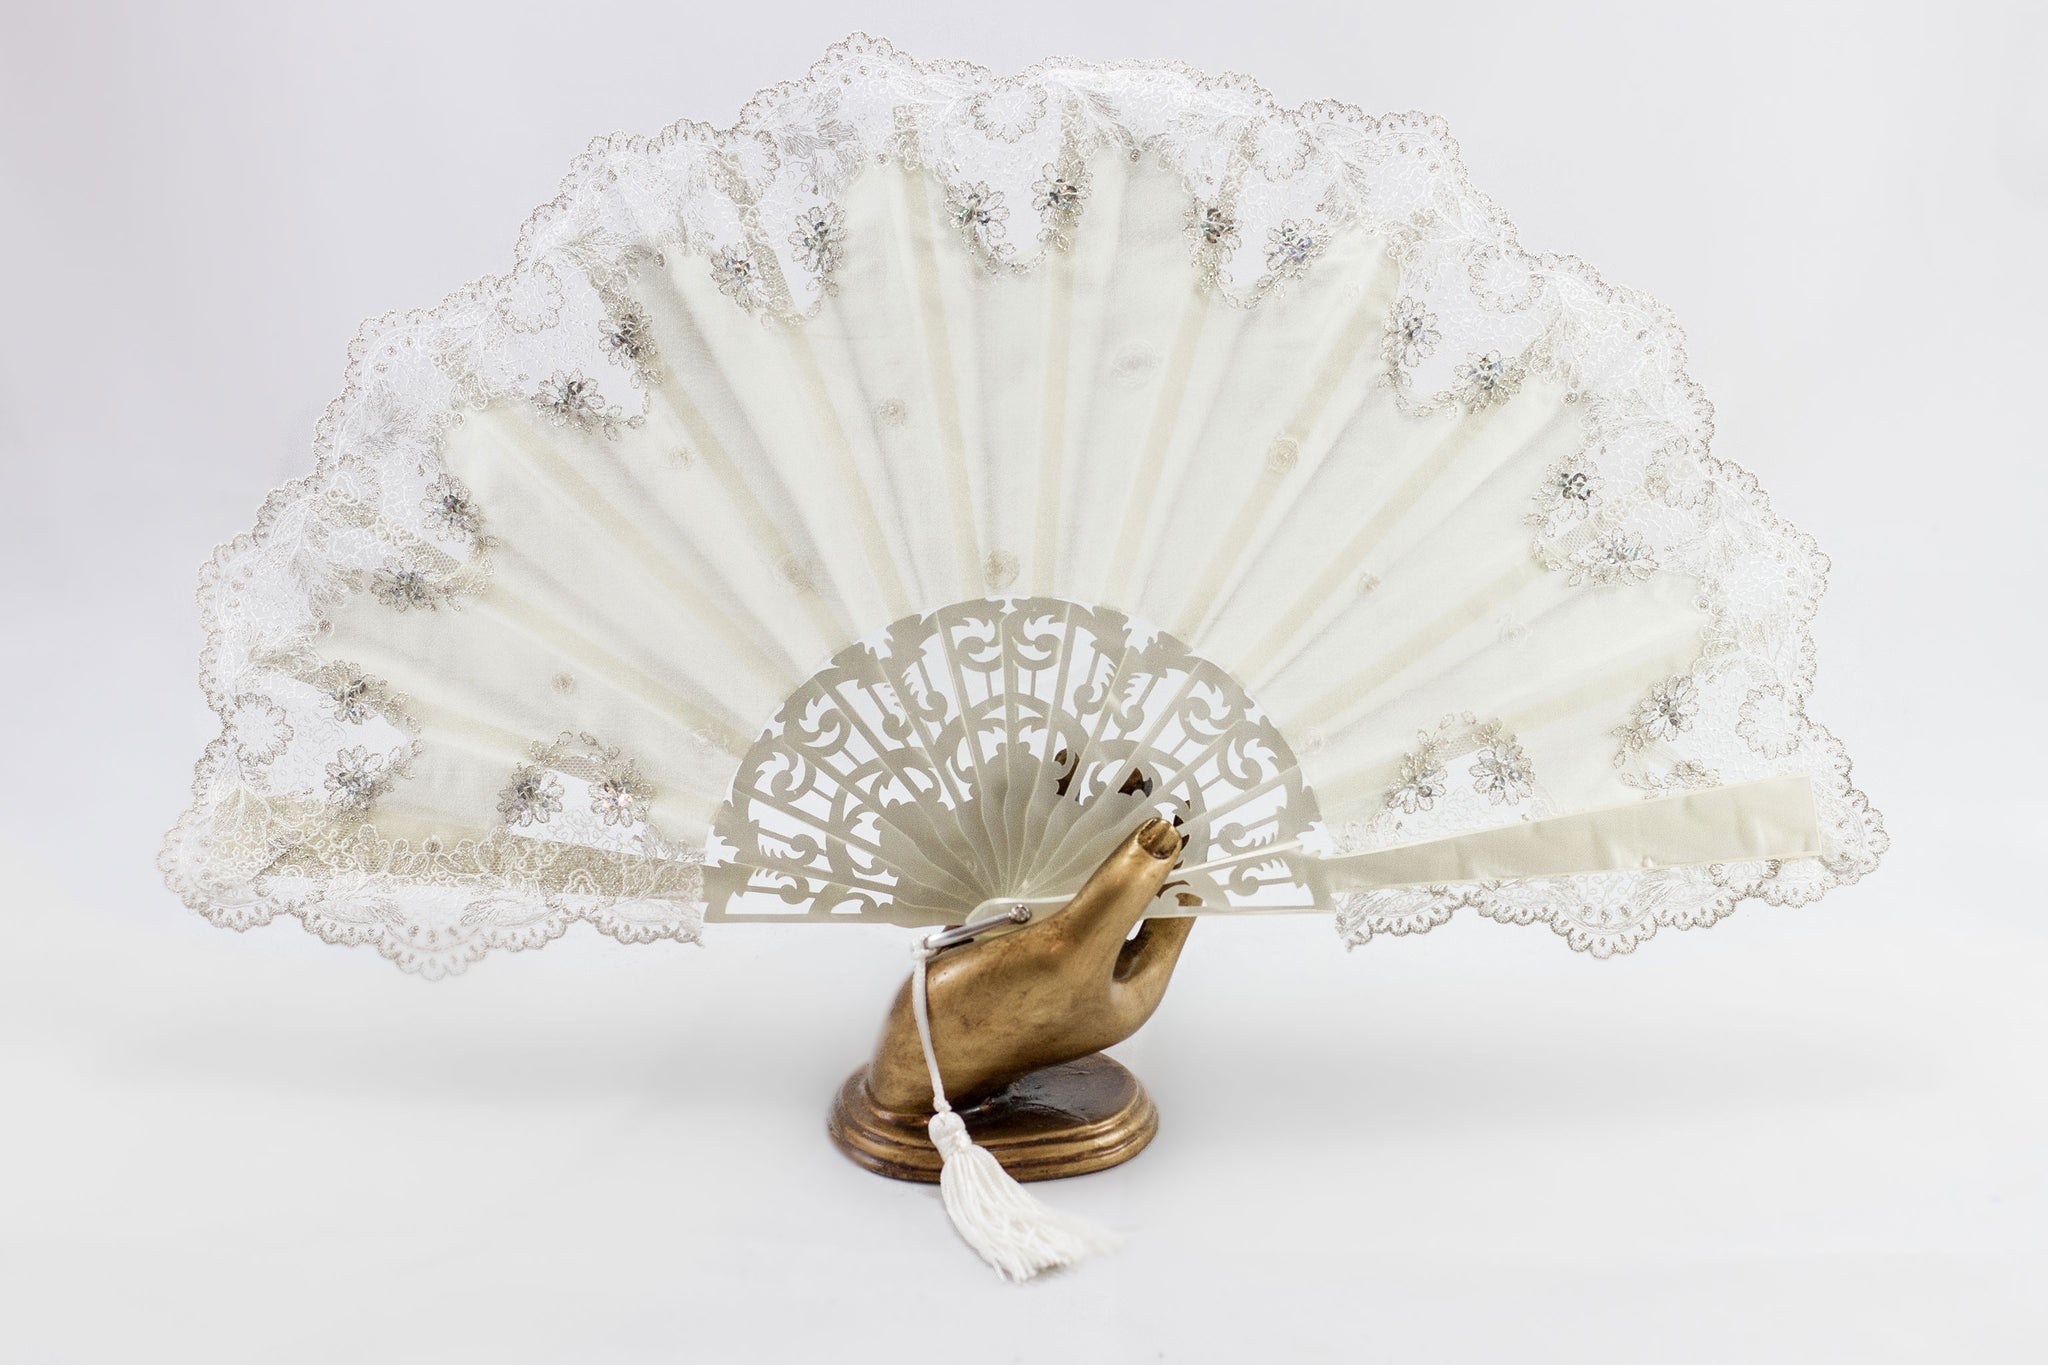 Savannah - Exquisite cream and silver luxury hand fan